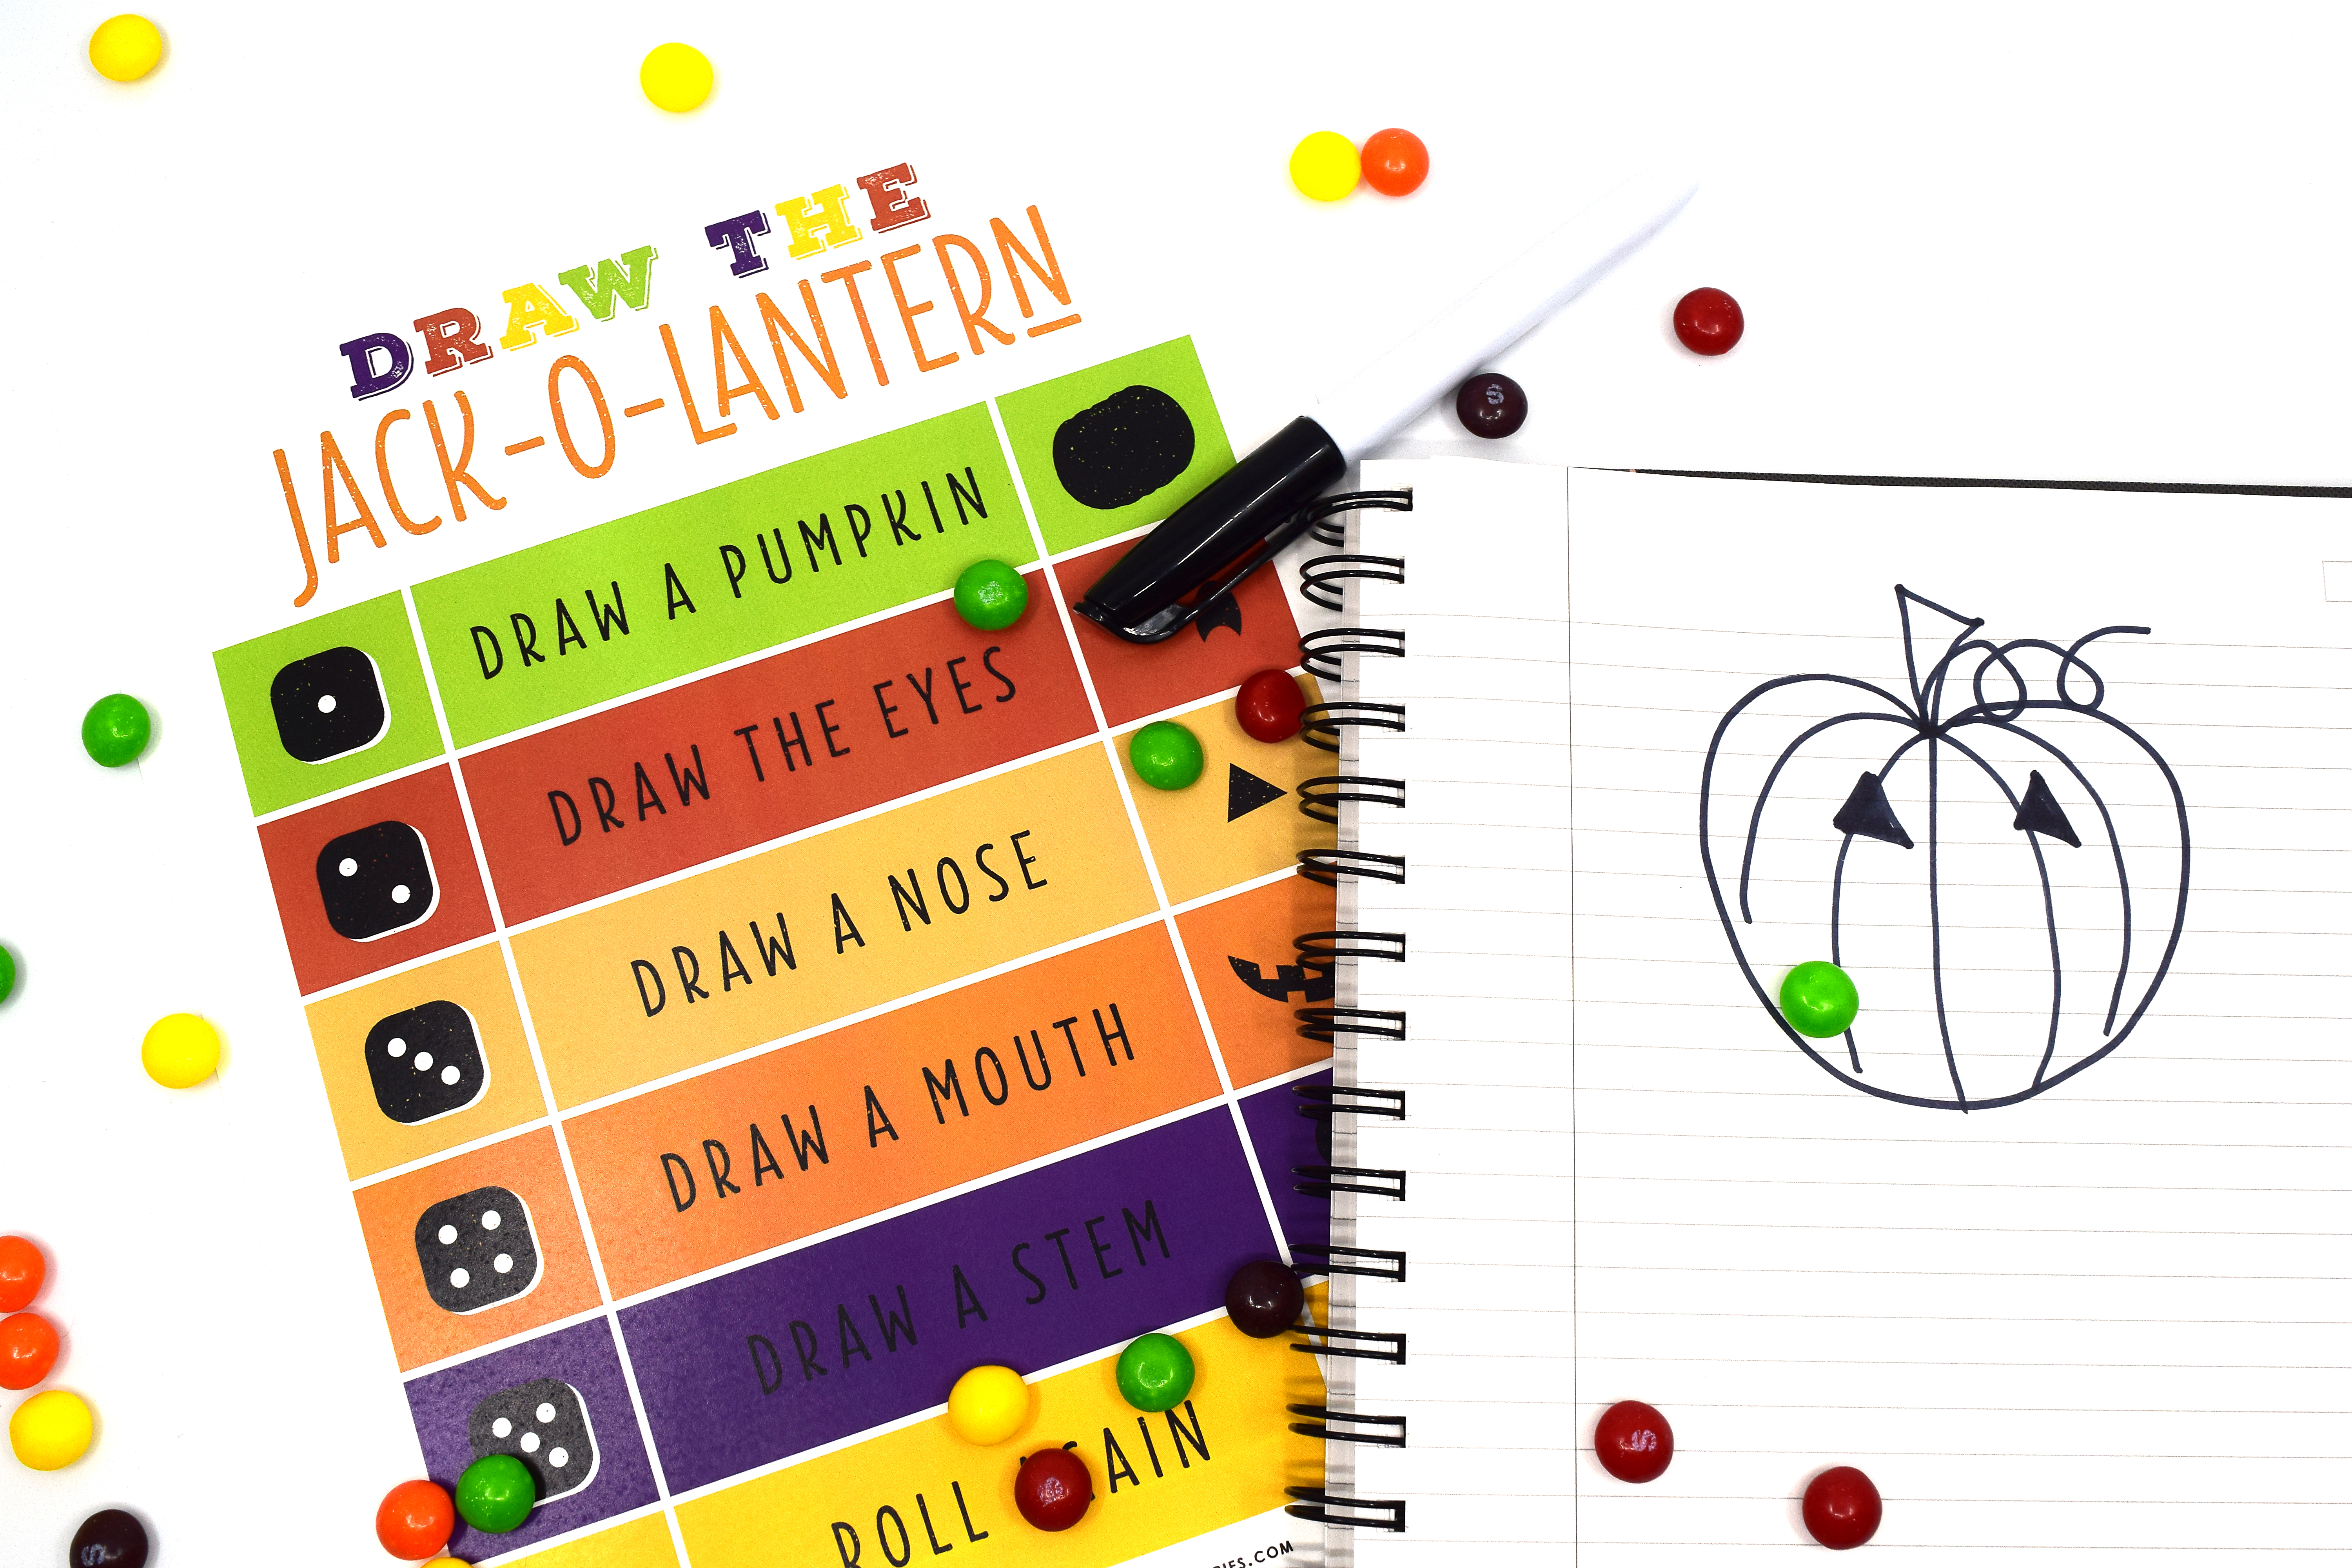 To play this game, you will need a piece of paper and writing utensil for every player, the Draw the Jack-O-Lantern game ...